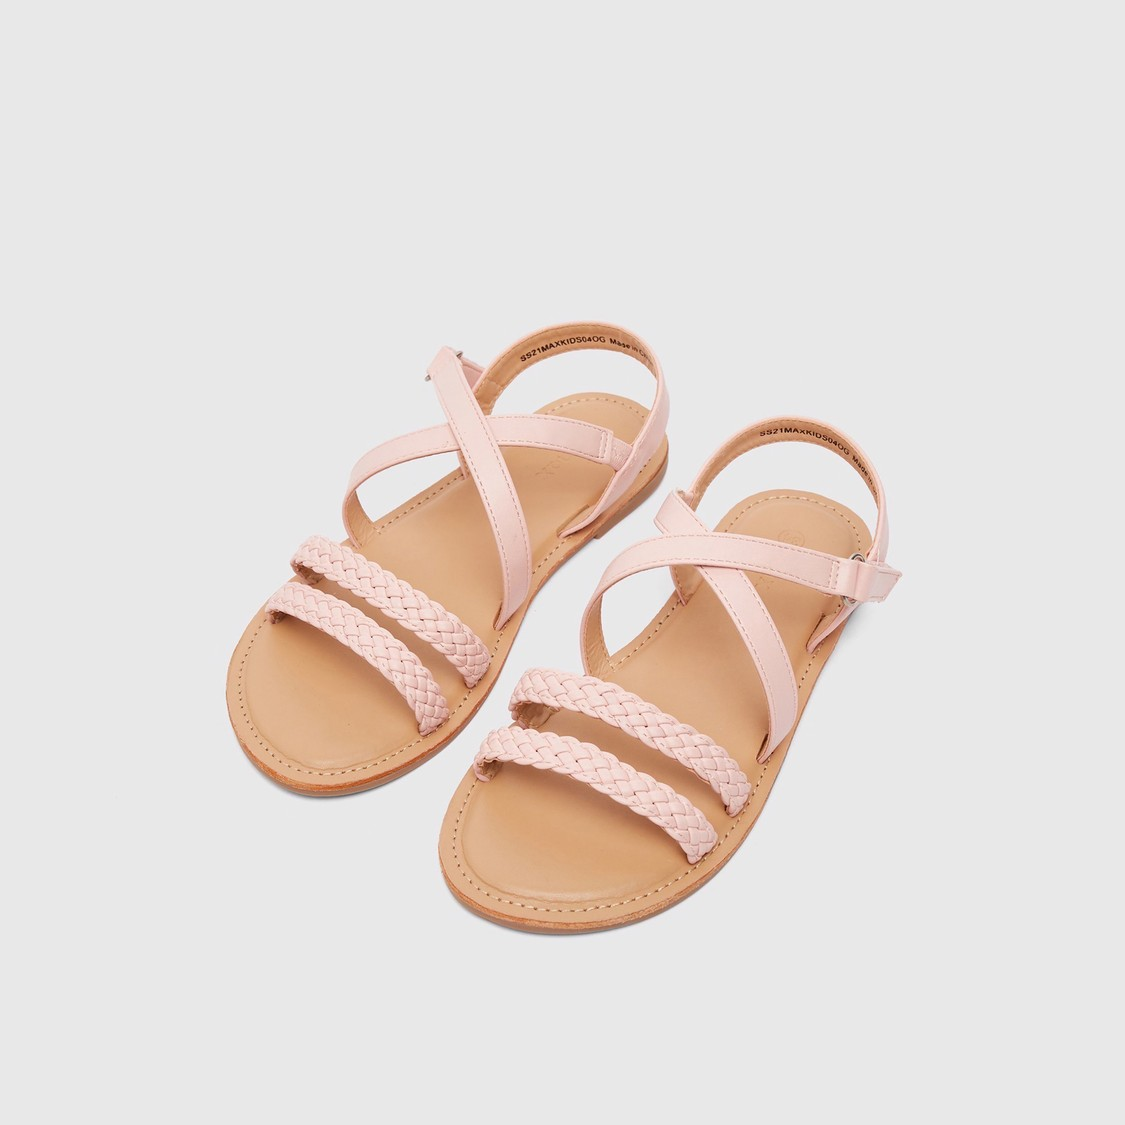 Strappy Open-Toe Sandals with Hook and Loop Closure